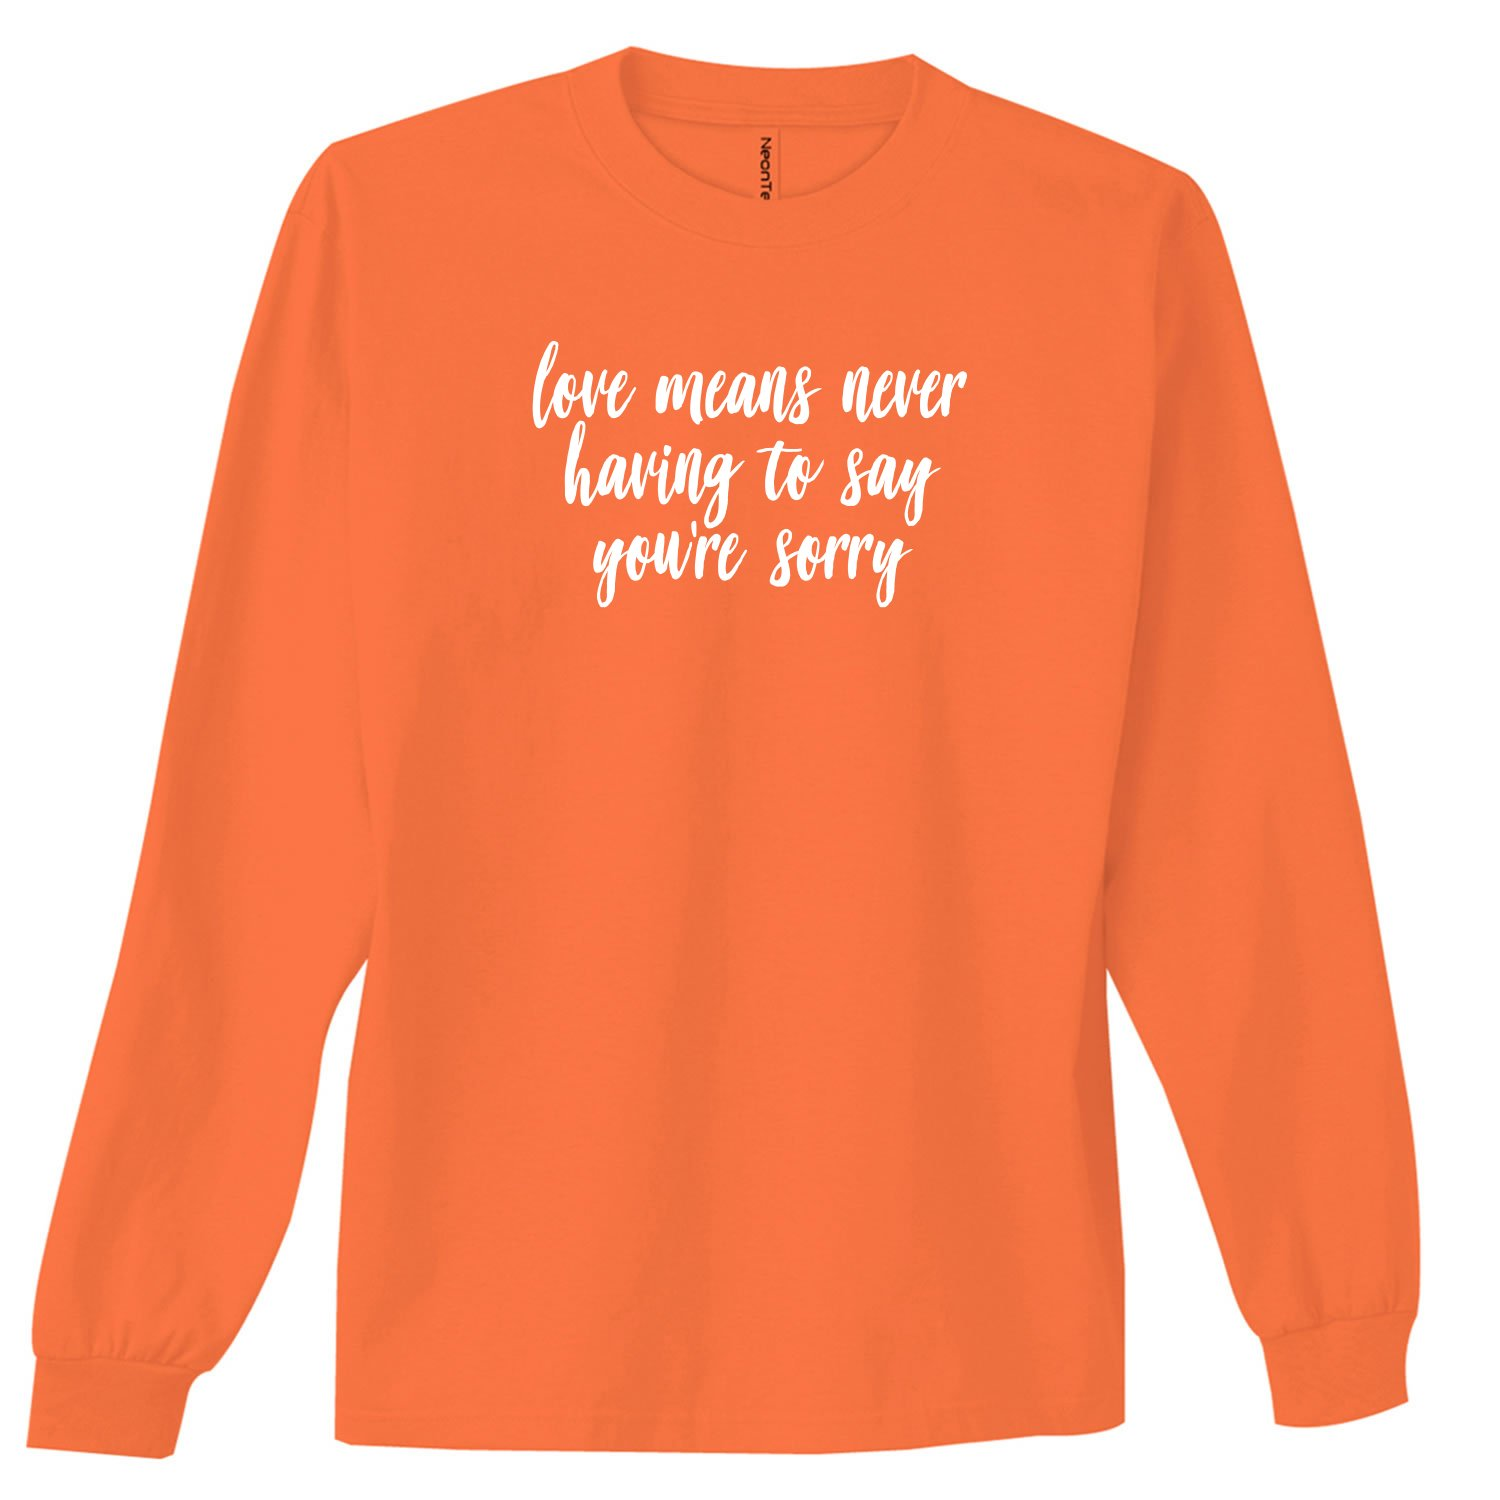 Love Means Never Having to say Neon Orange Adult Long Sleeve T-Shirt - XX-Large